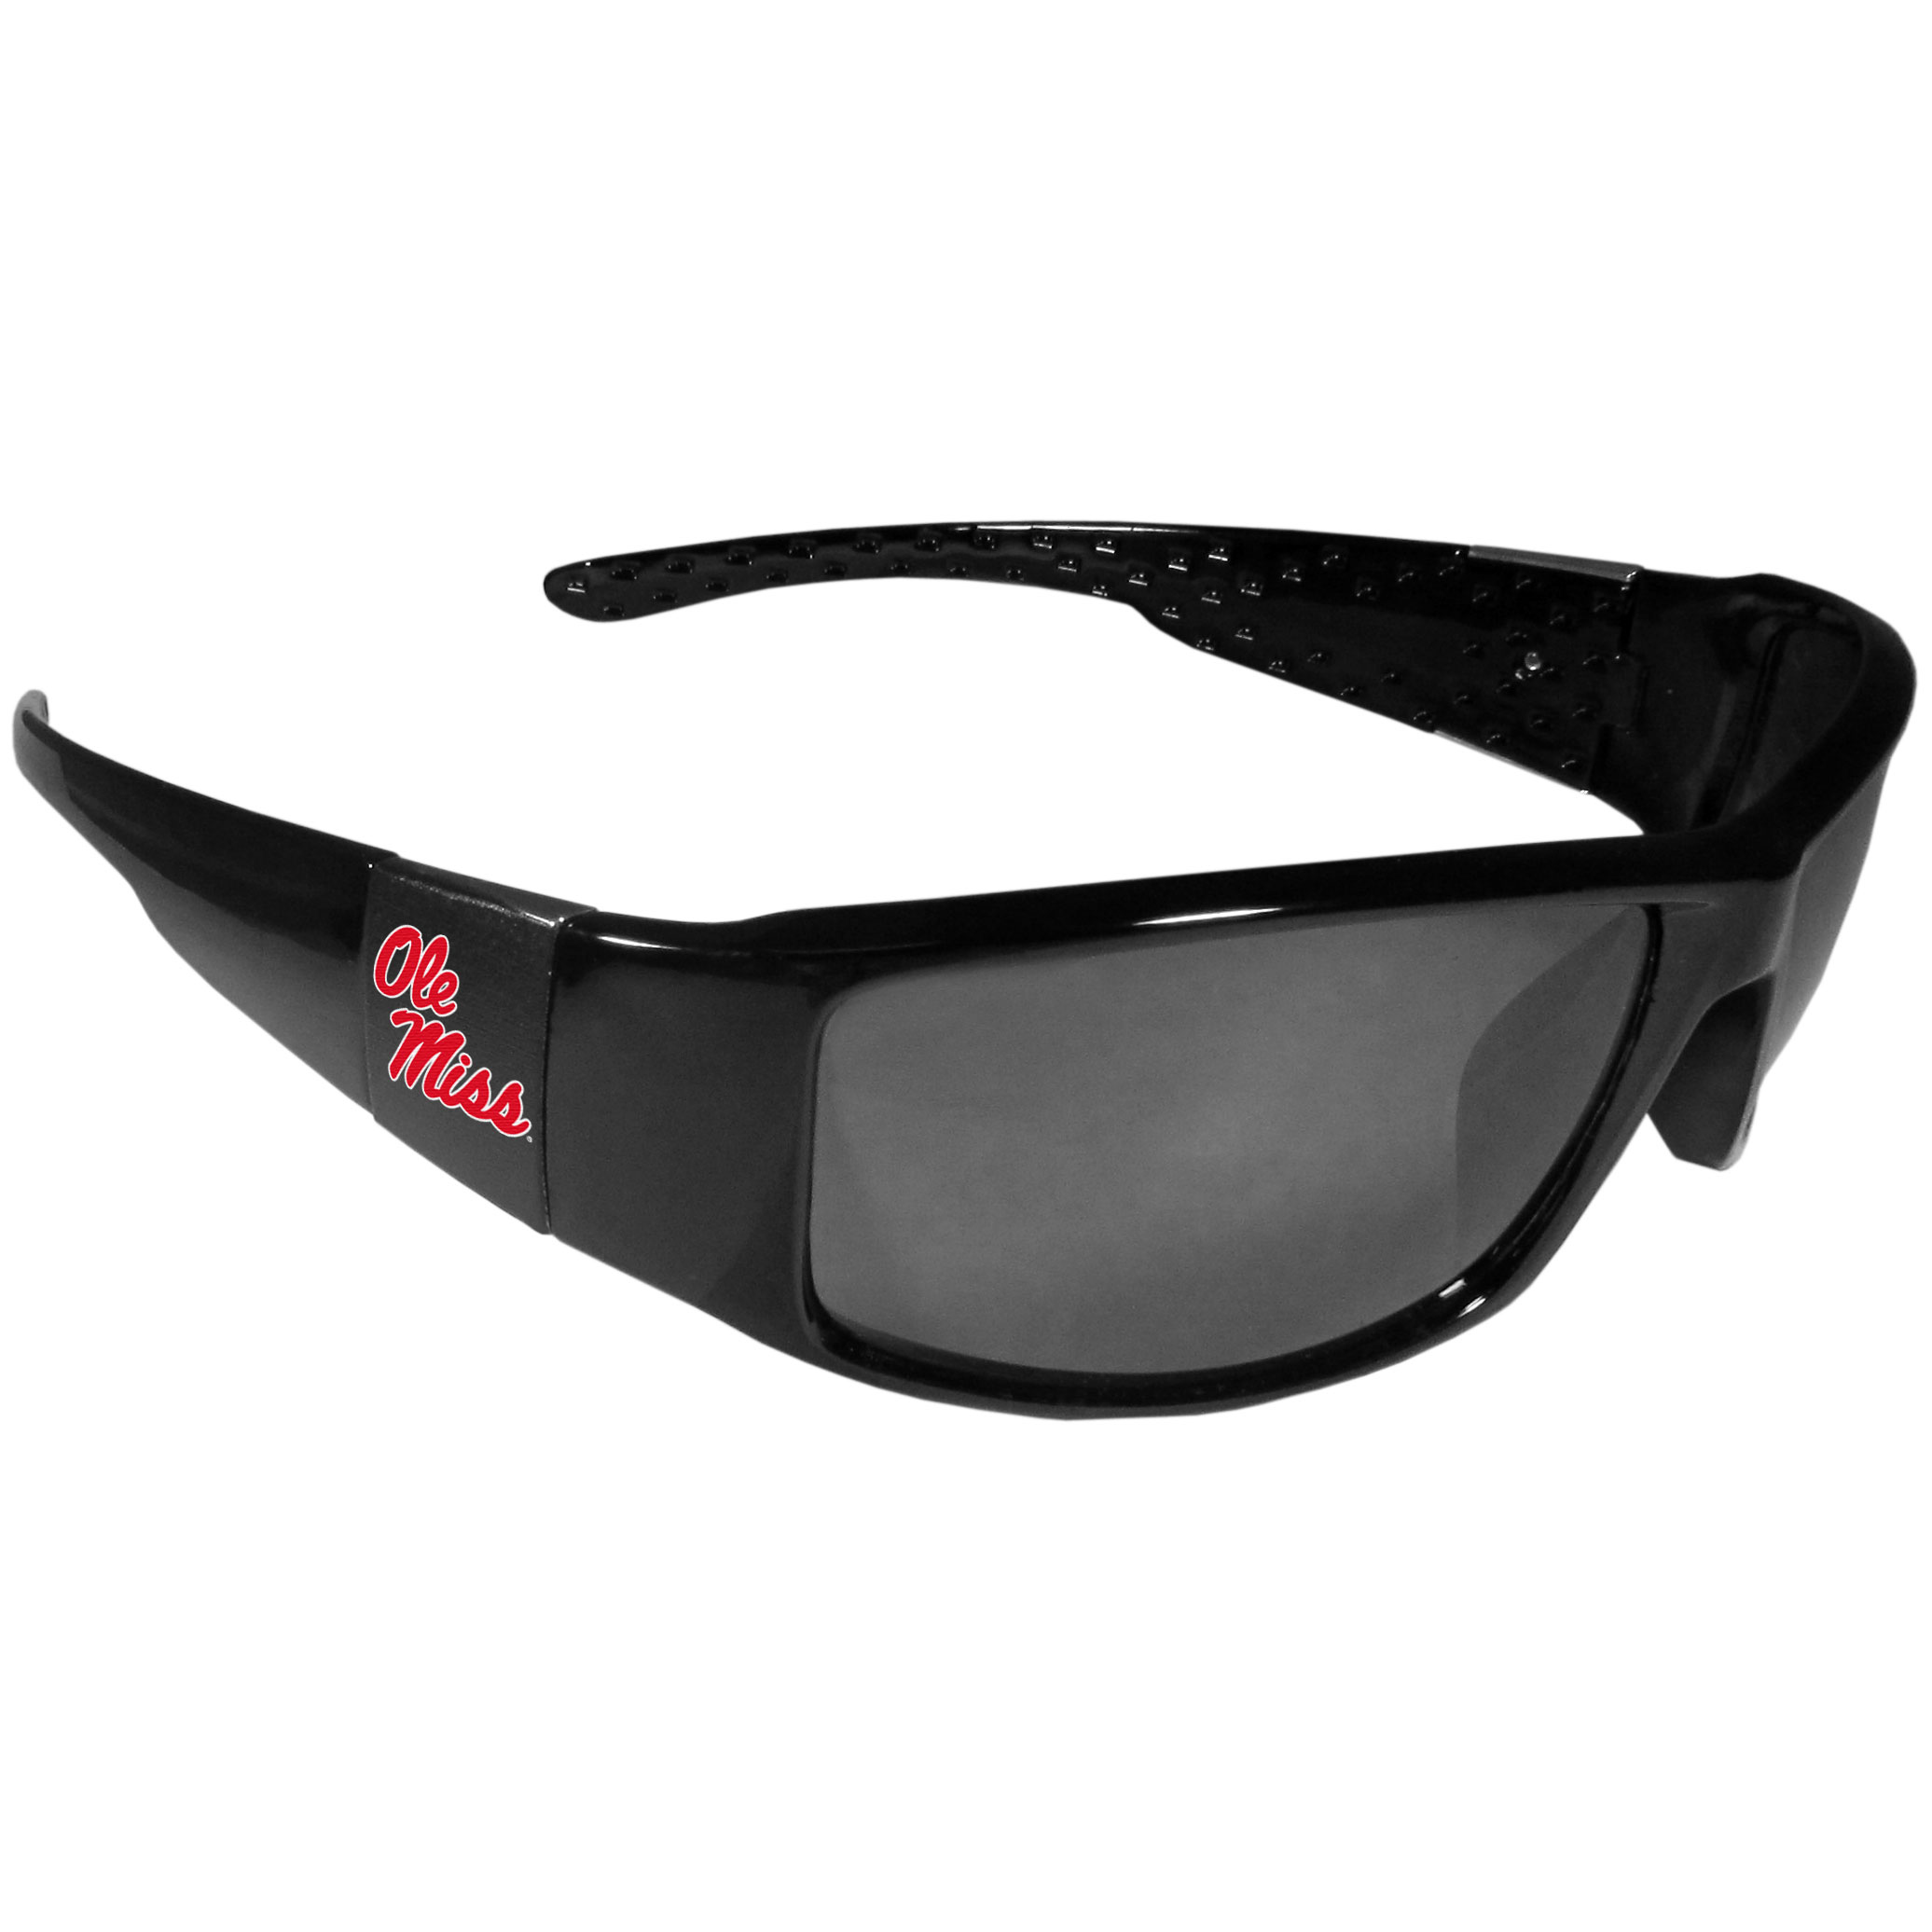 Mississippi Rebels Black Wrap Sunglasses - These designer inspired frames have a sleek look in all black with  Mississippi Rebels shields on each arm with a printed logo. The shades are perfect for any outdoor activity like; golfing, driving, hiking, fishing or cheering on the team at a tailgating event or at a home game day BBQ with a lens rating of 100% UVA/UVB for maximum UV protection. The high-quality frames are as durable as they are fashionable and with their classic look they are the perfect fan accessory that can be worn everyday for every occasion.